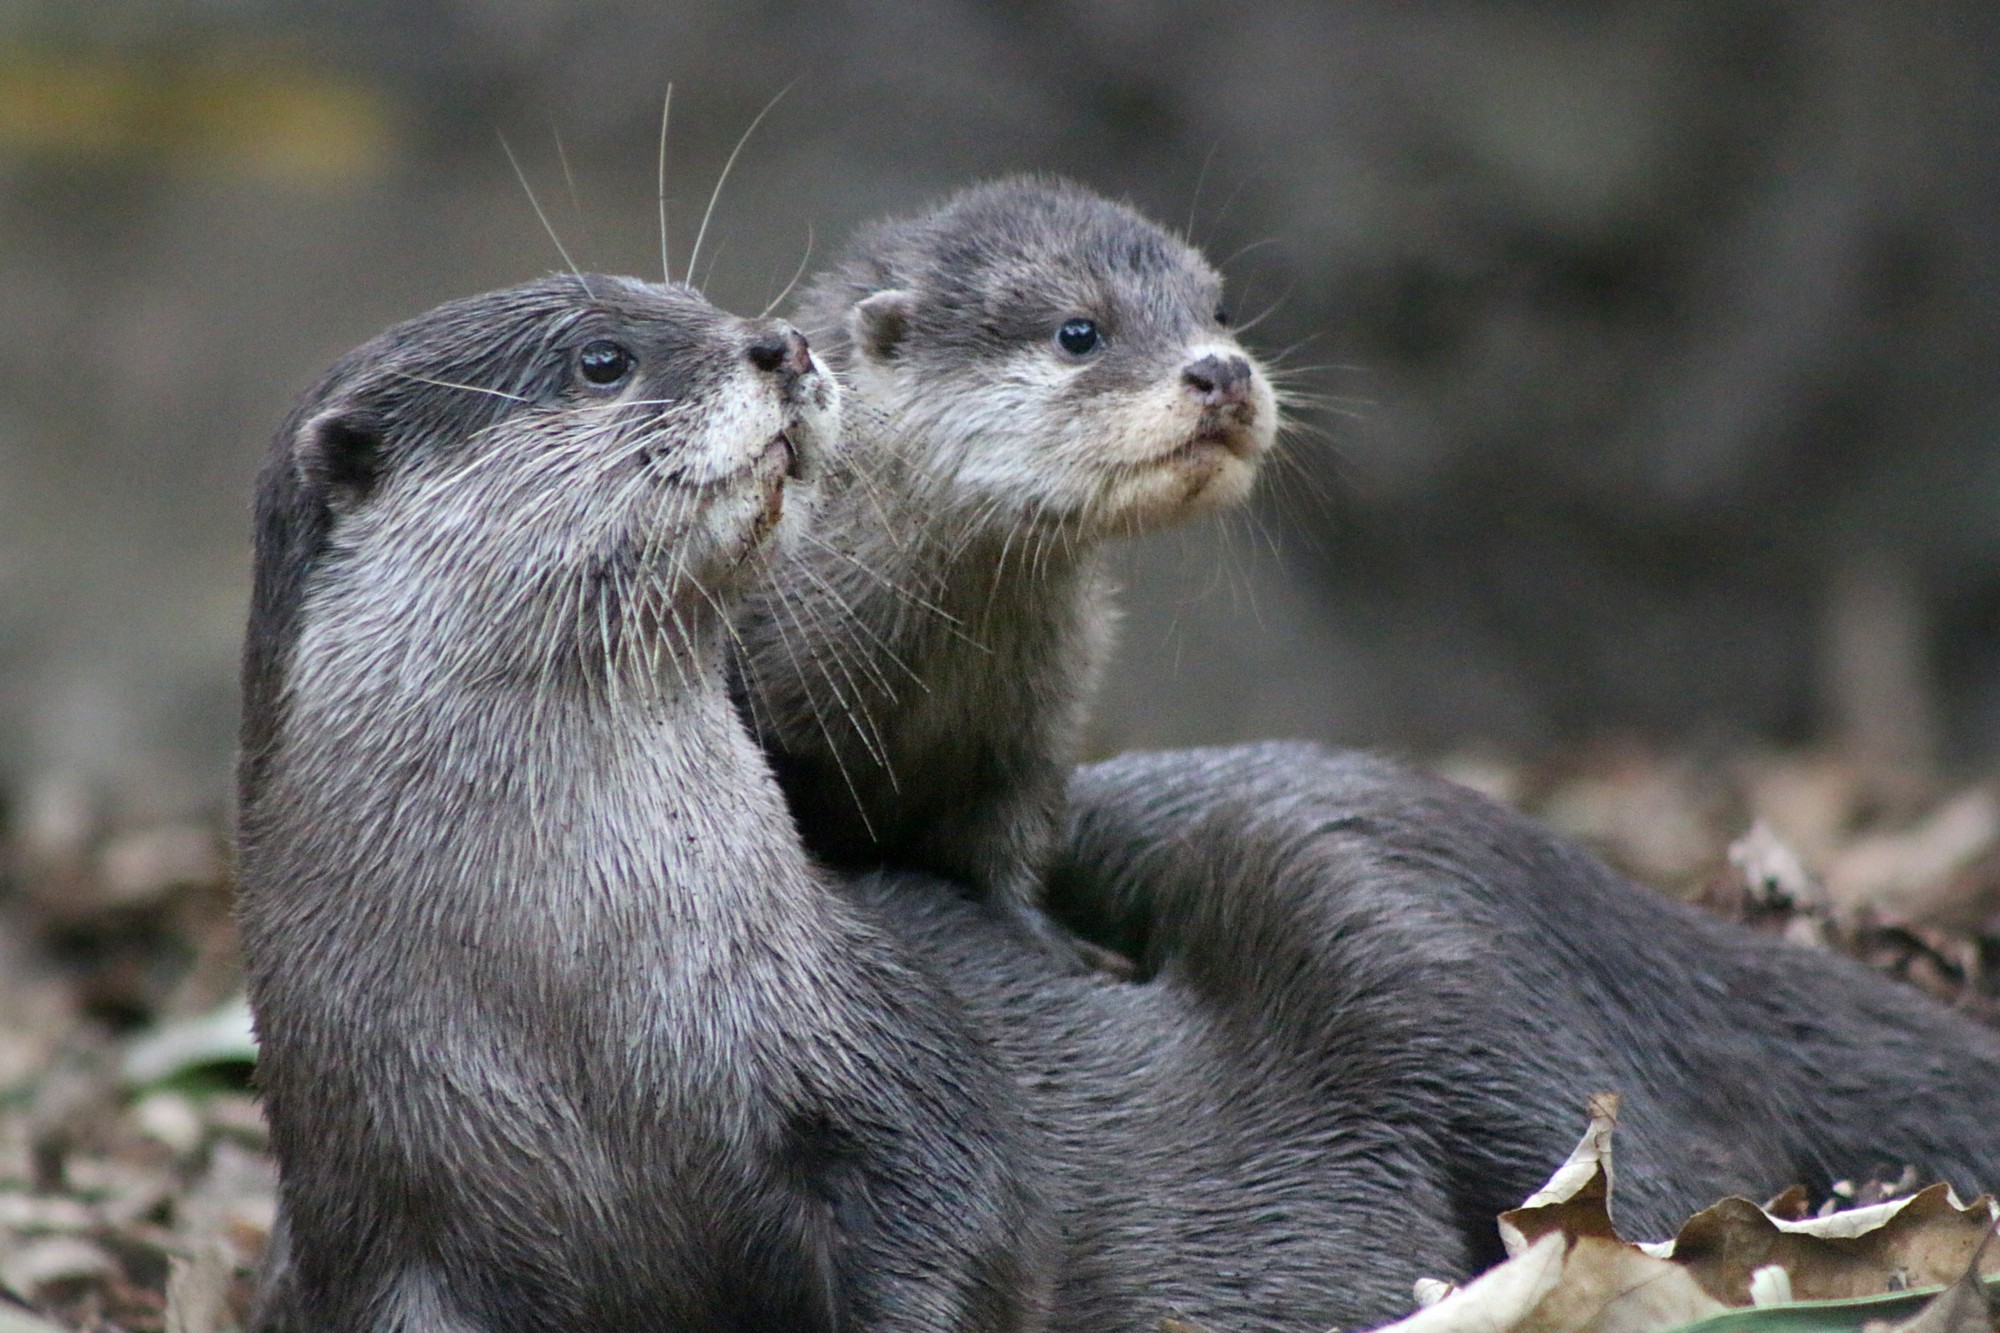 10 facts you might not know about the adorable otter